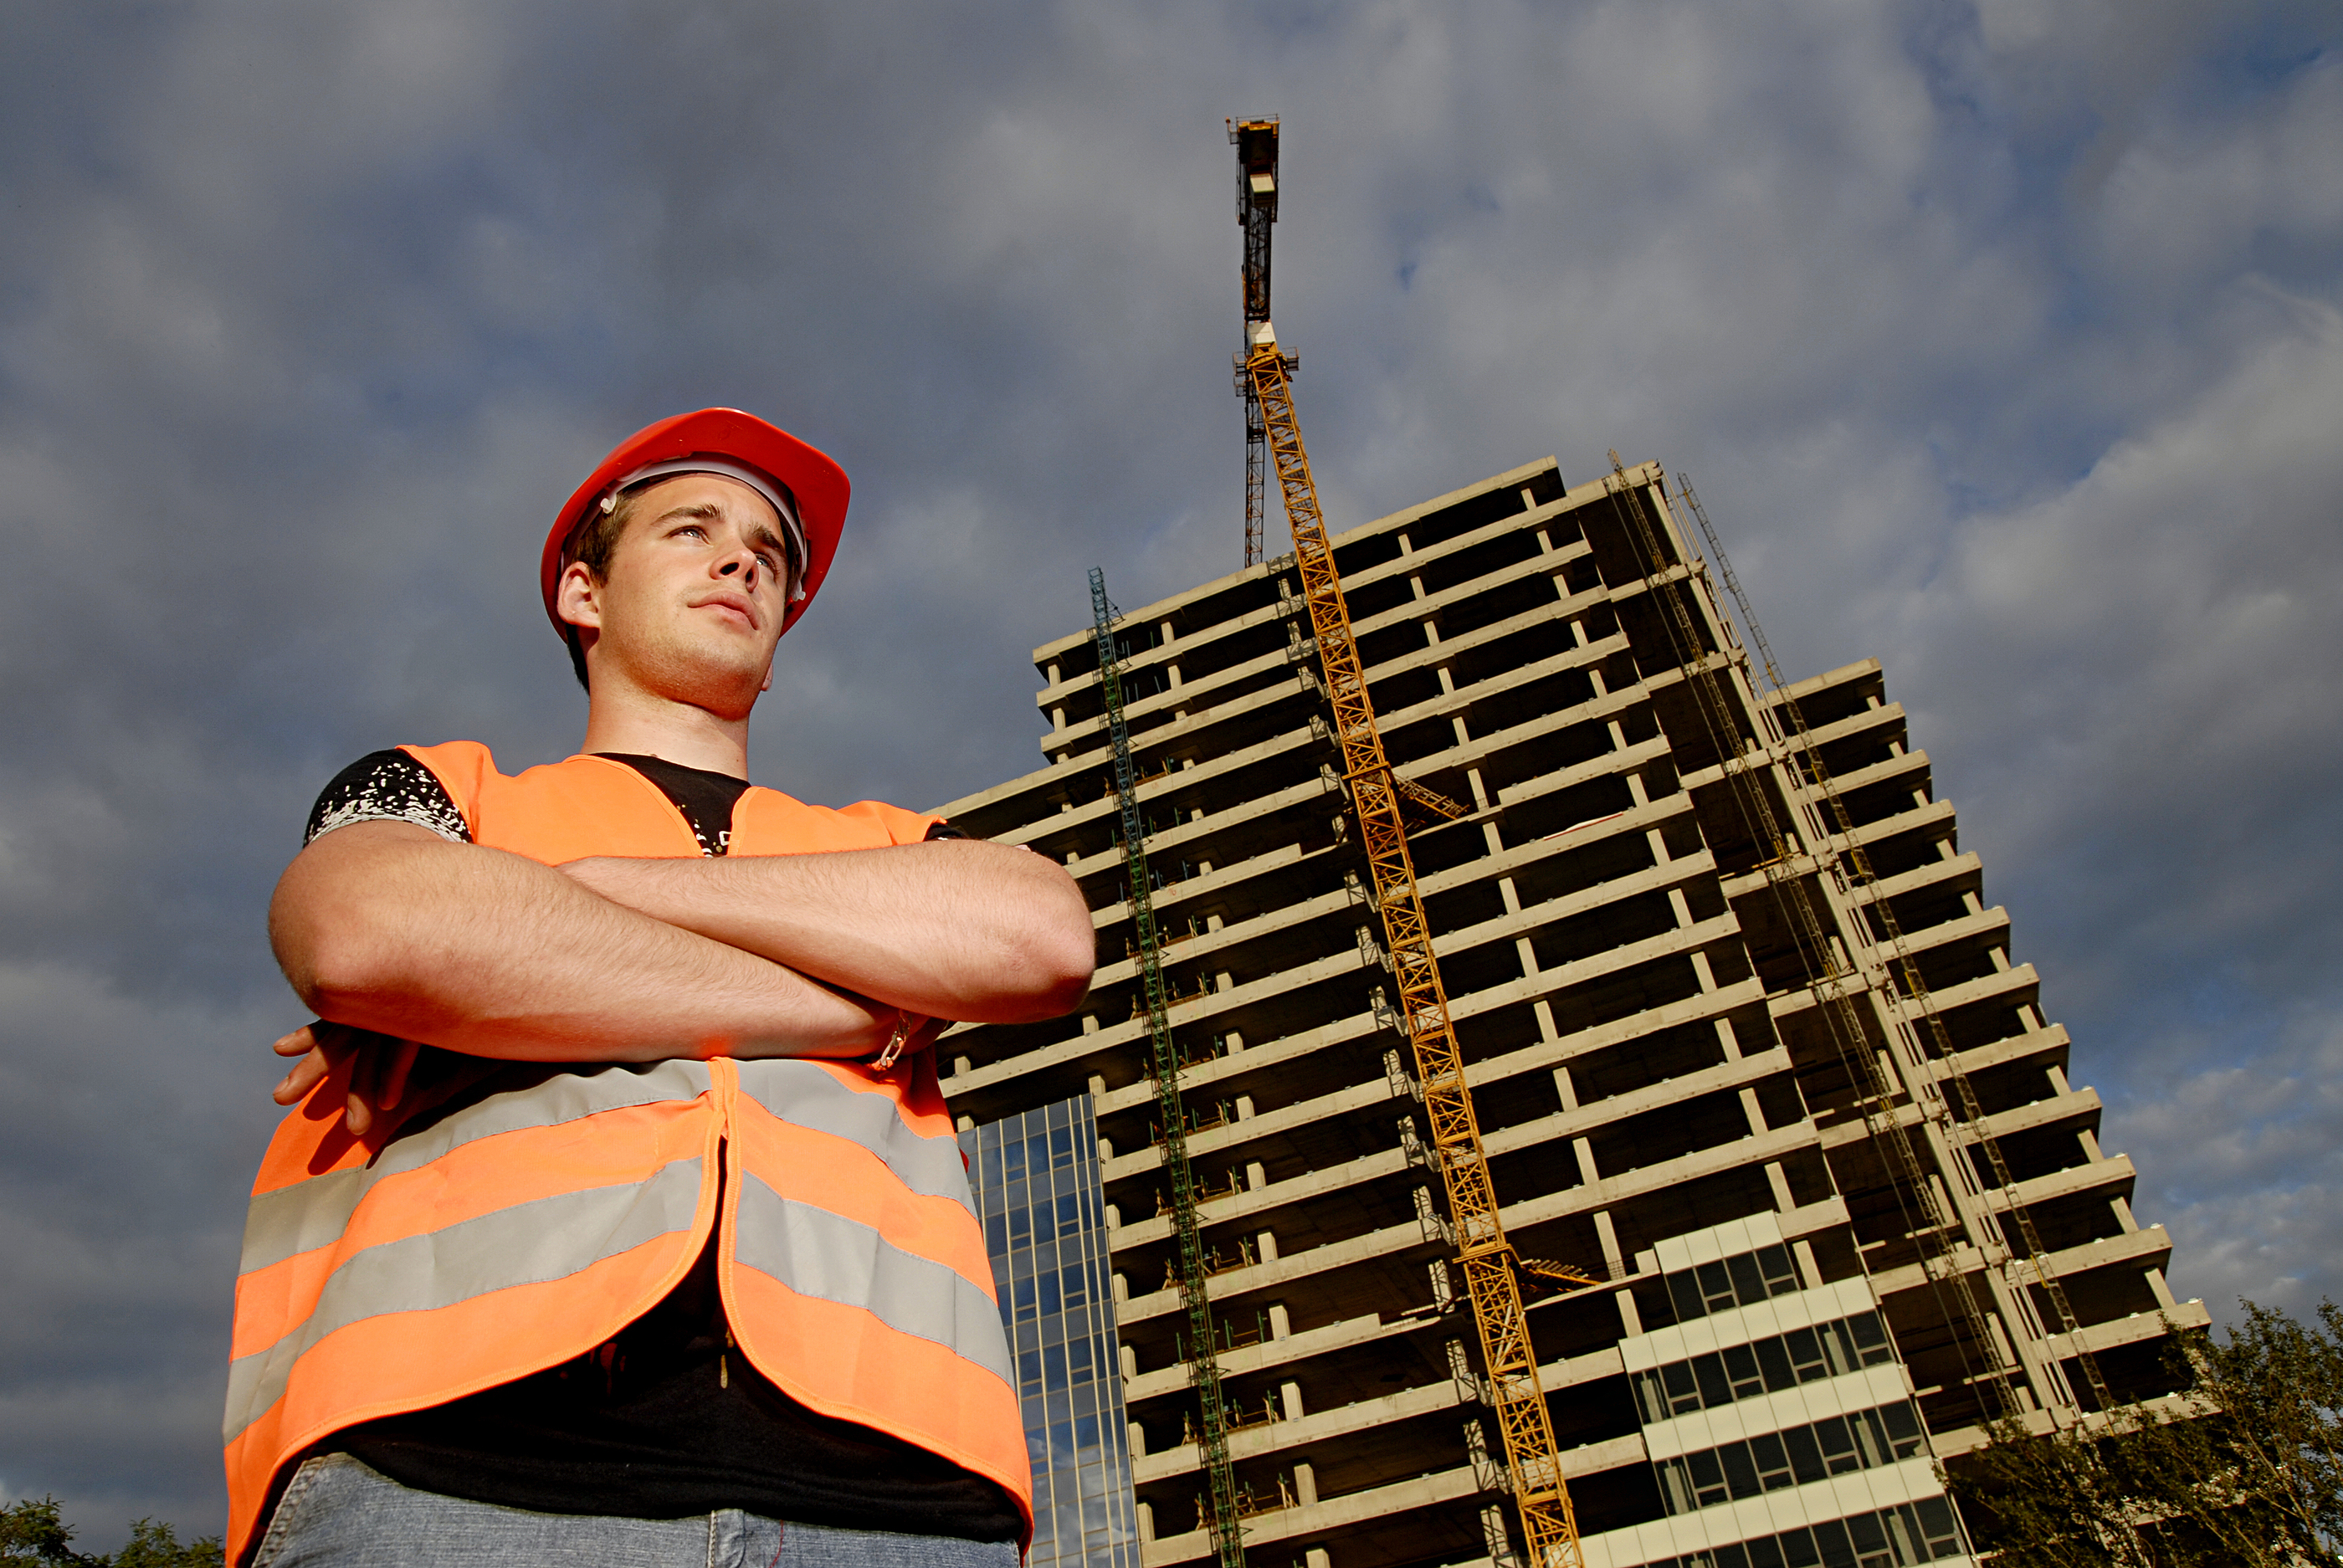 PUWER equipment breaches increase by 40% on construction sites